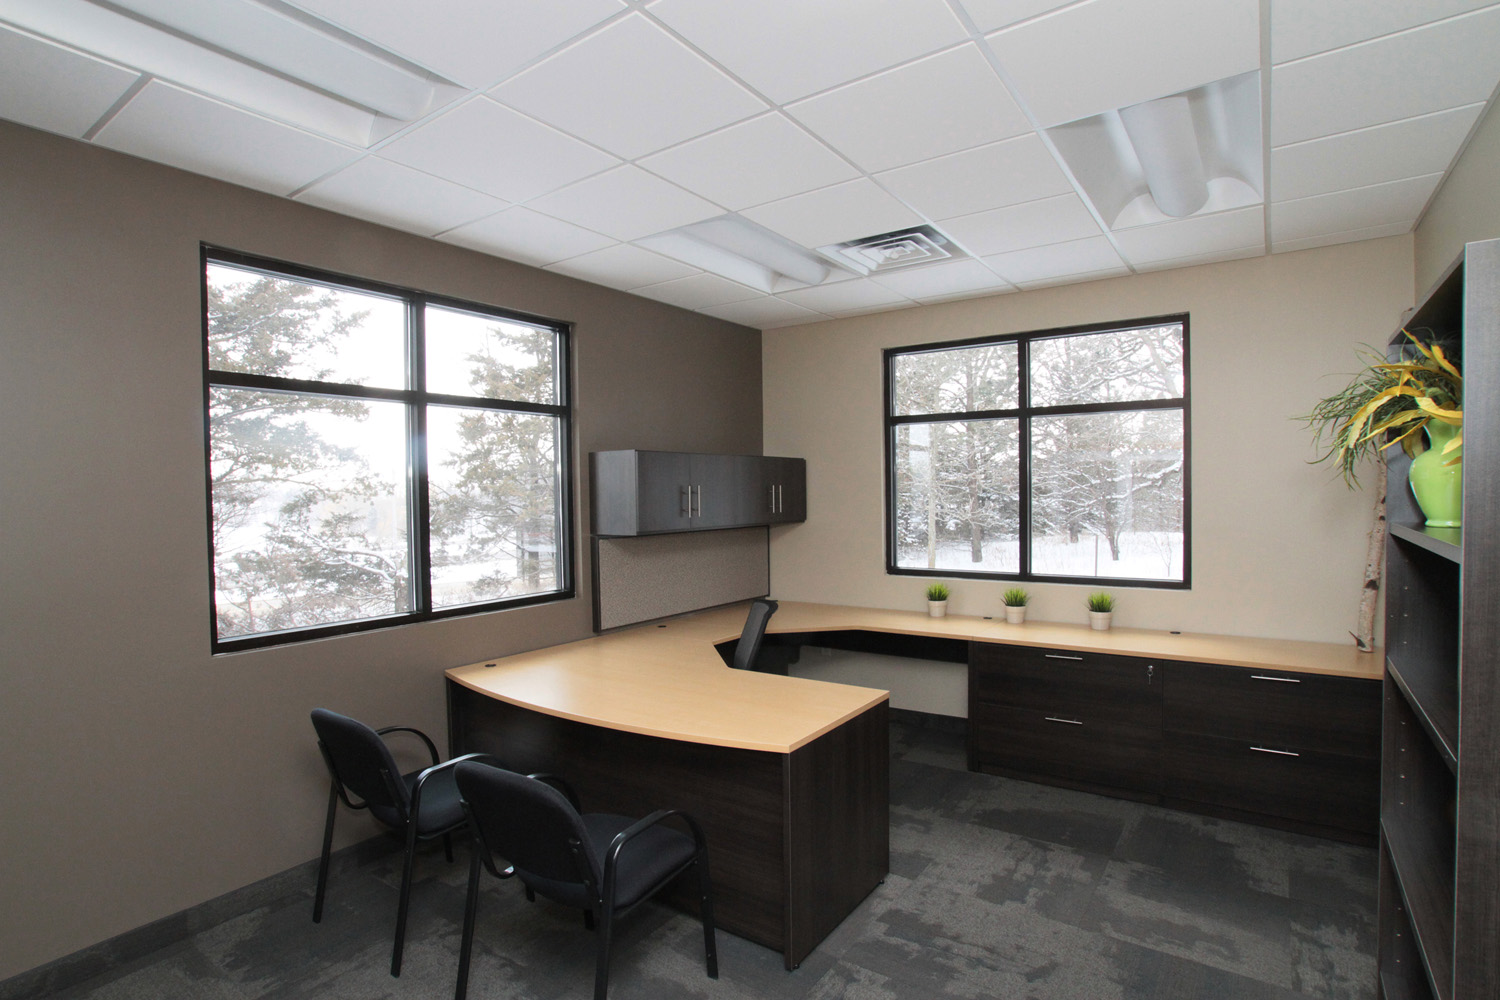 Office space design mankato new used office for Interior design office layout